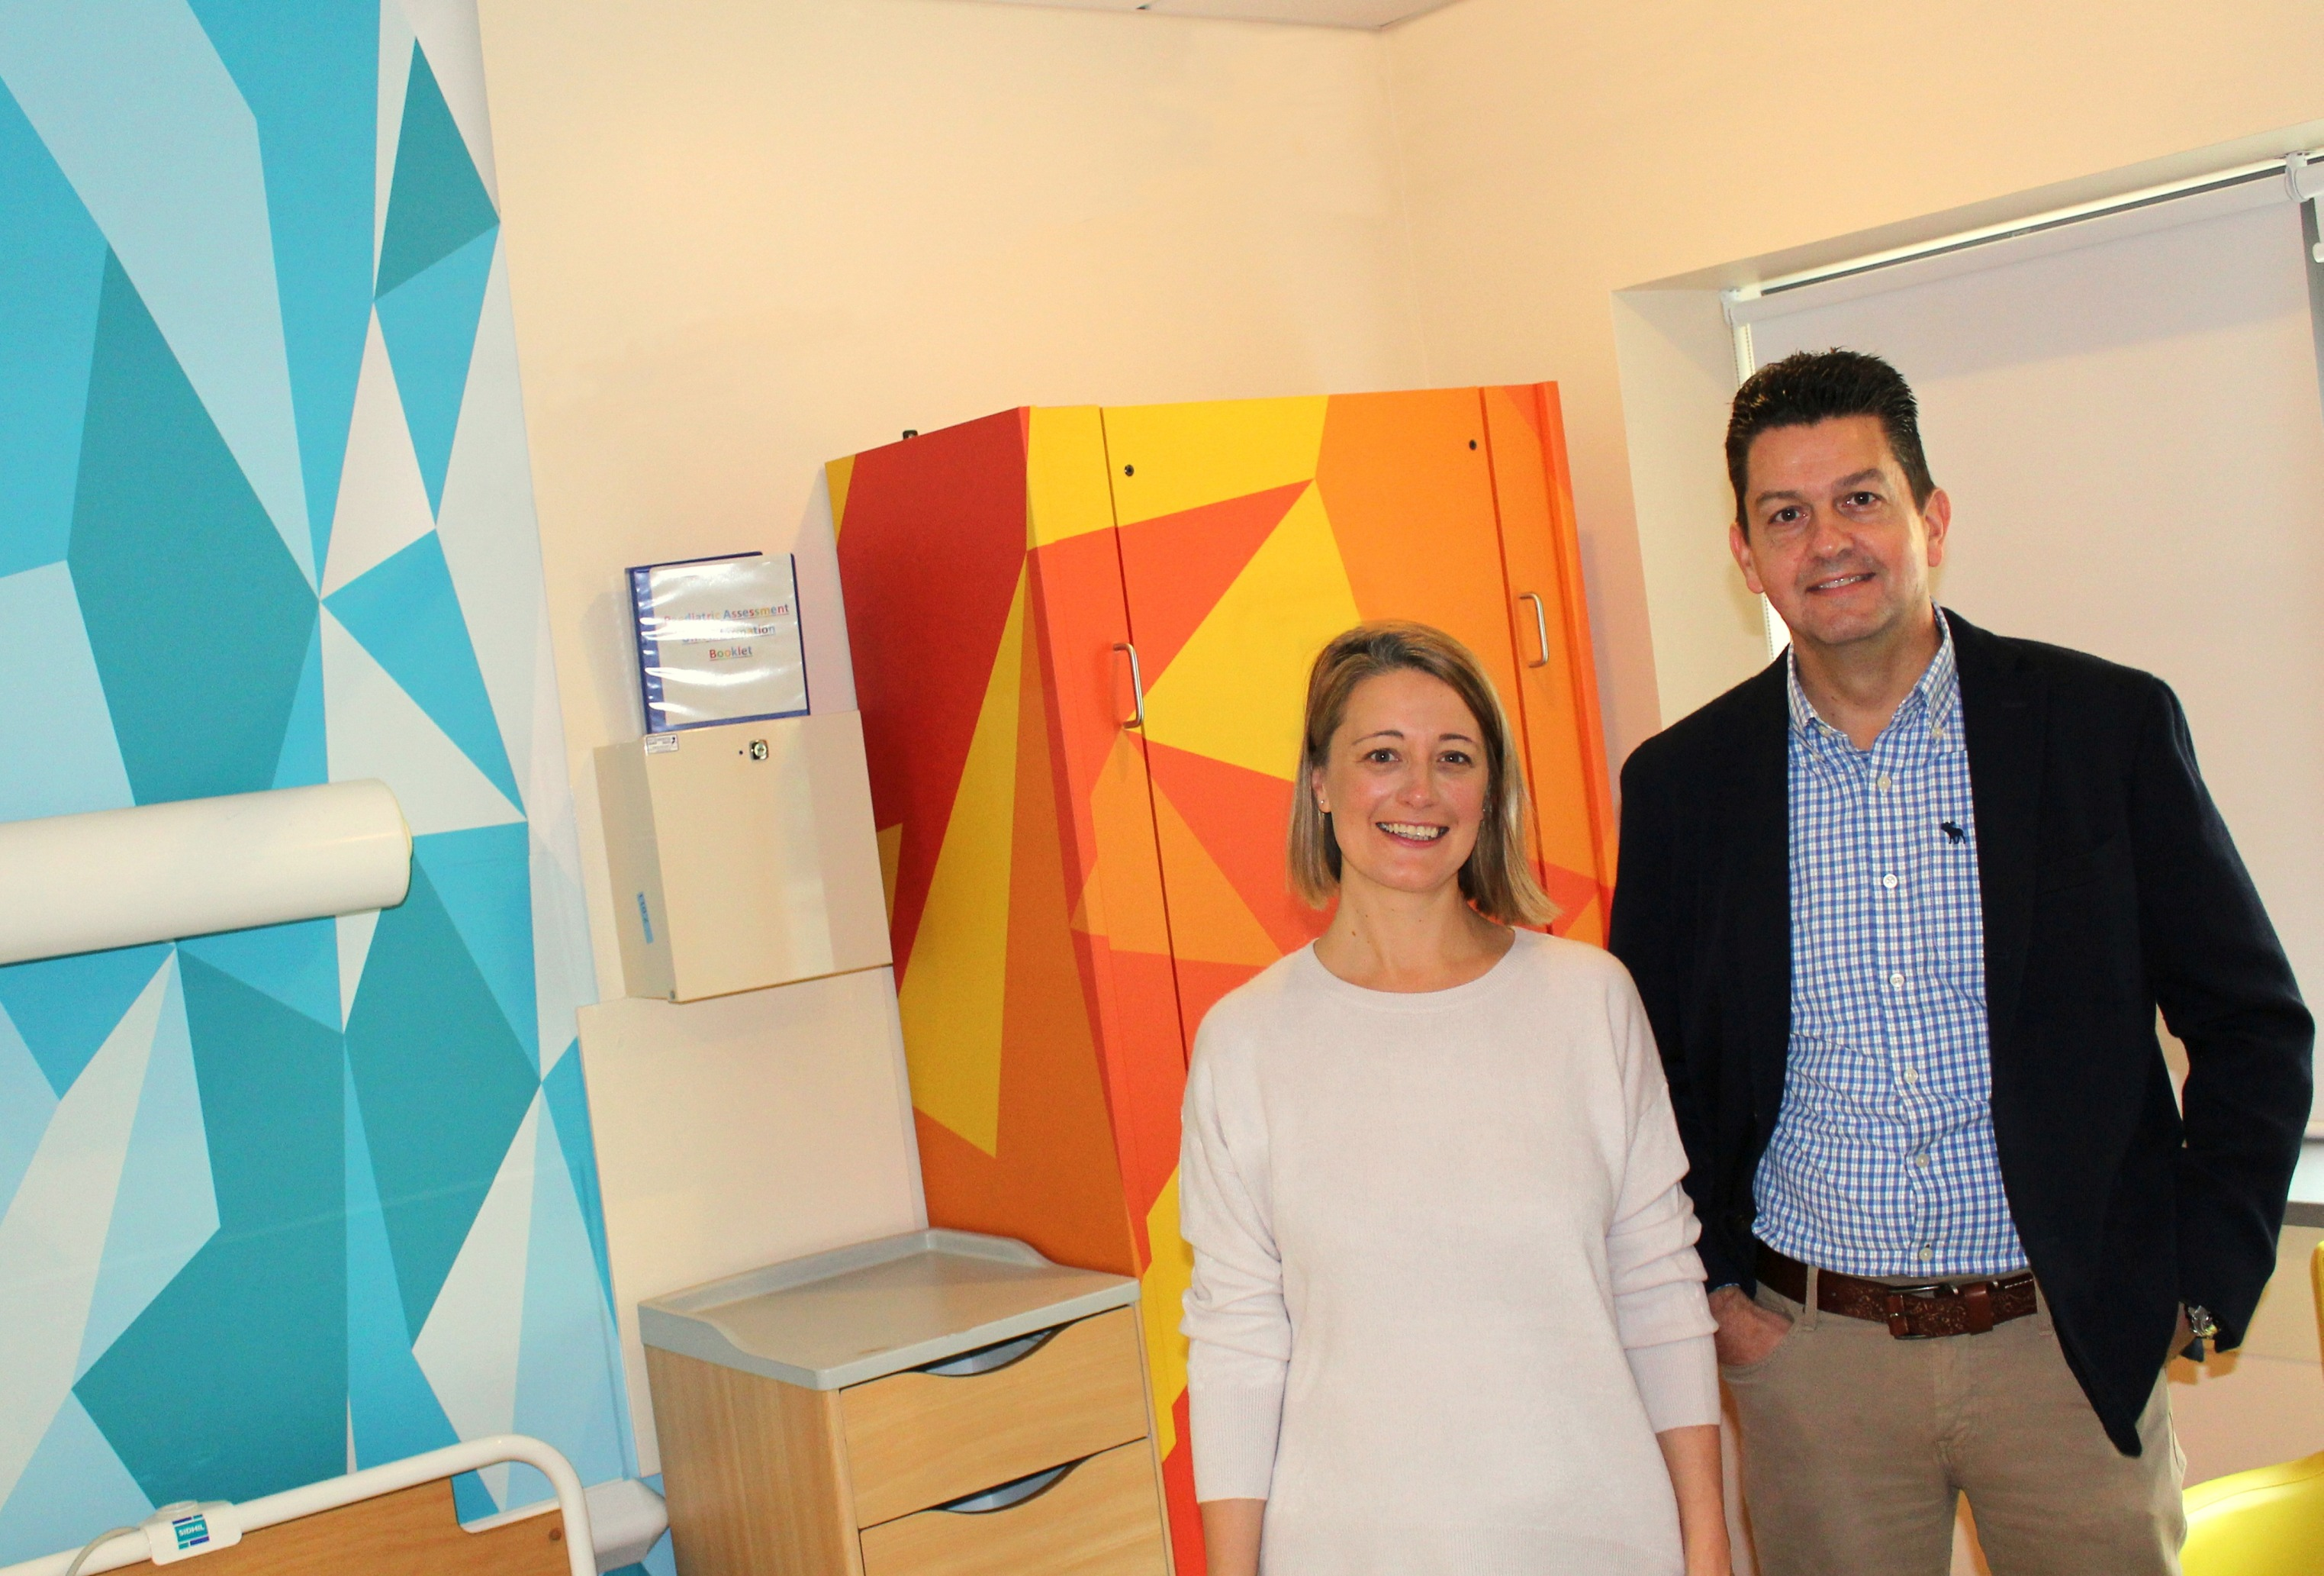 Rooms Transformed at Children's Hospital